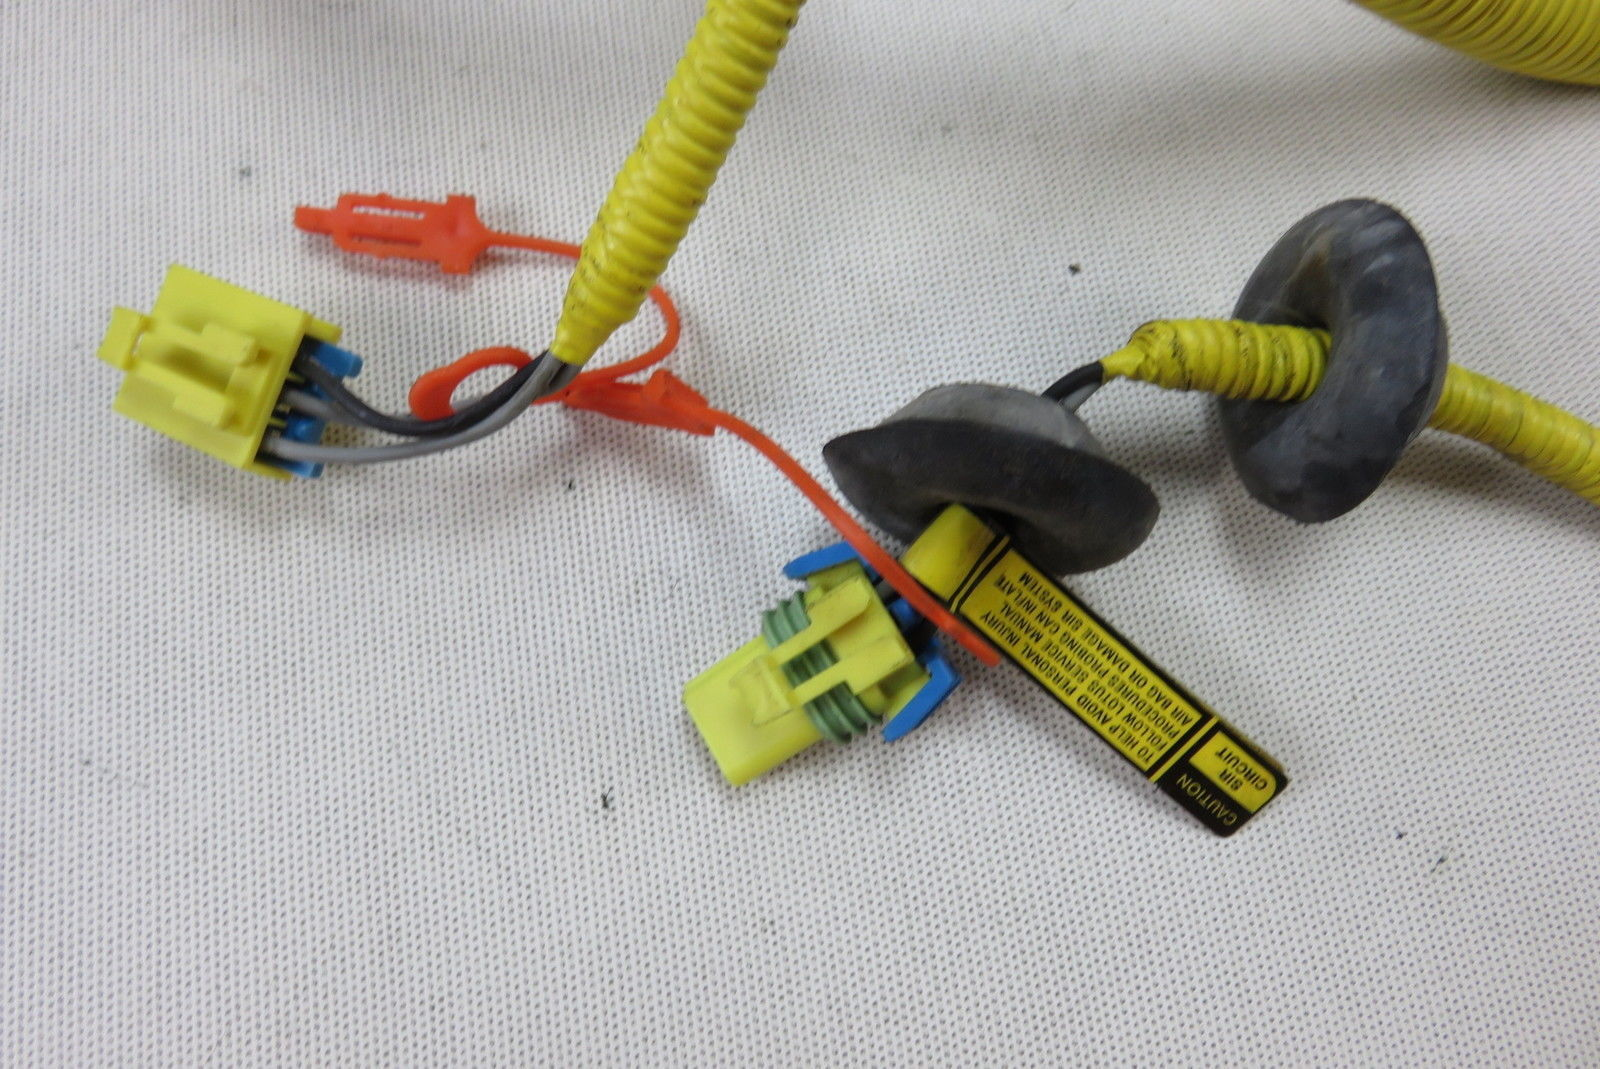 airbag wiring harness 02 lotus esprit airbag system srs air bag wiring harness s auto  02 lotus esprit airbag system srs air